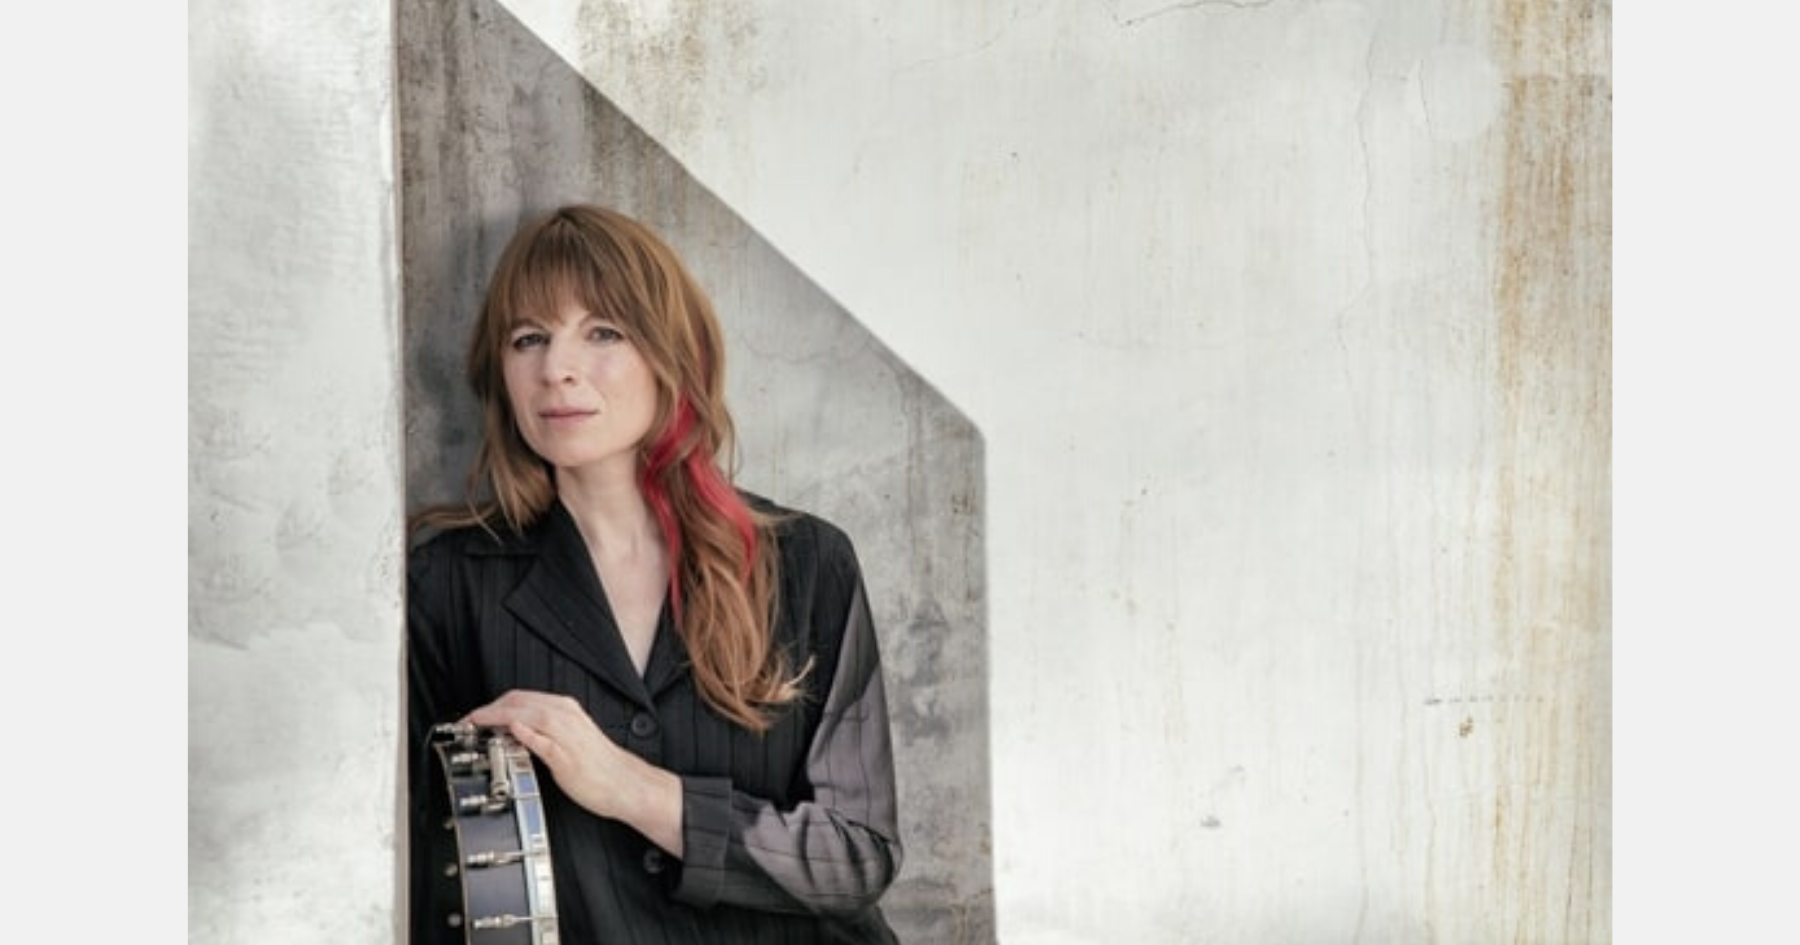 GIVEAWAY: Win tickets to Moira Smiley & Friends (LA) 2/15